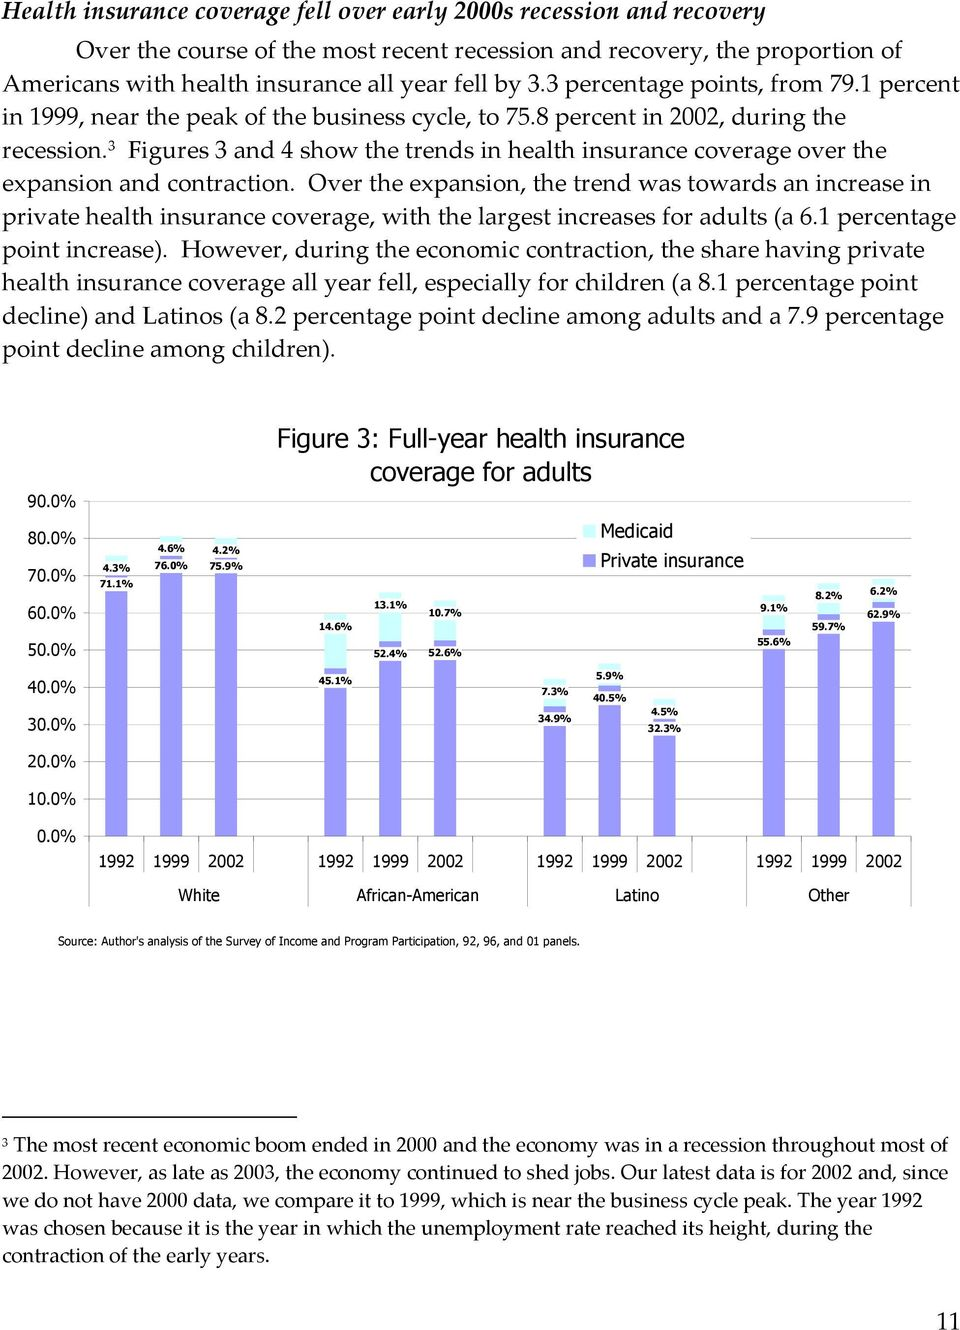 3 Figures 3 and 4 show the trends in health insurance coverage over the expansion and contraction.